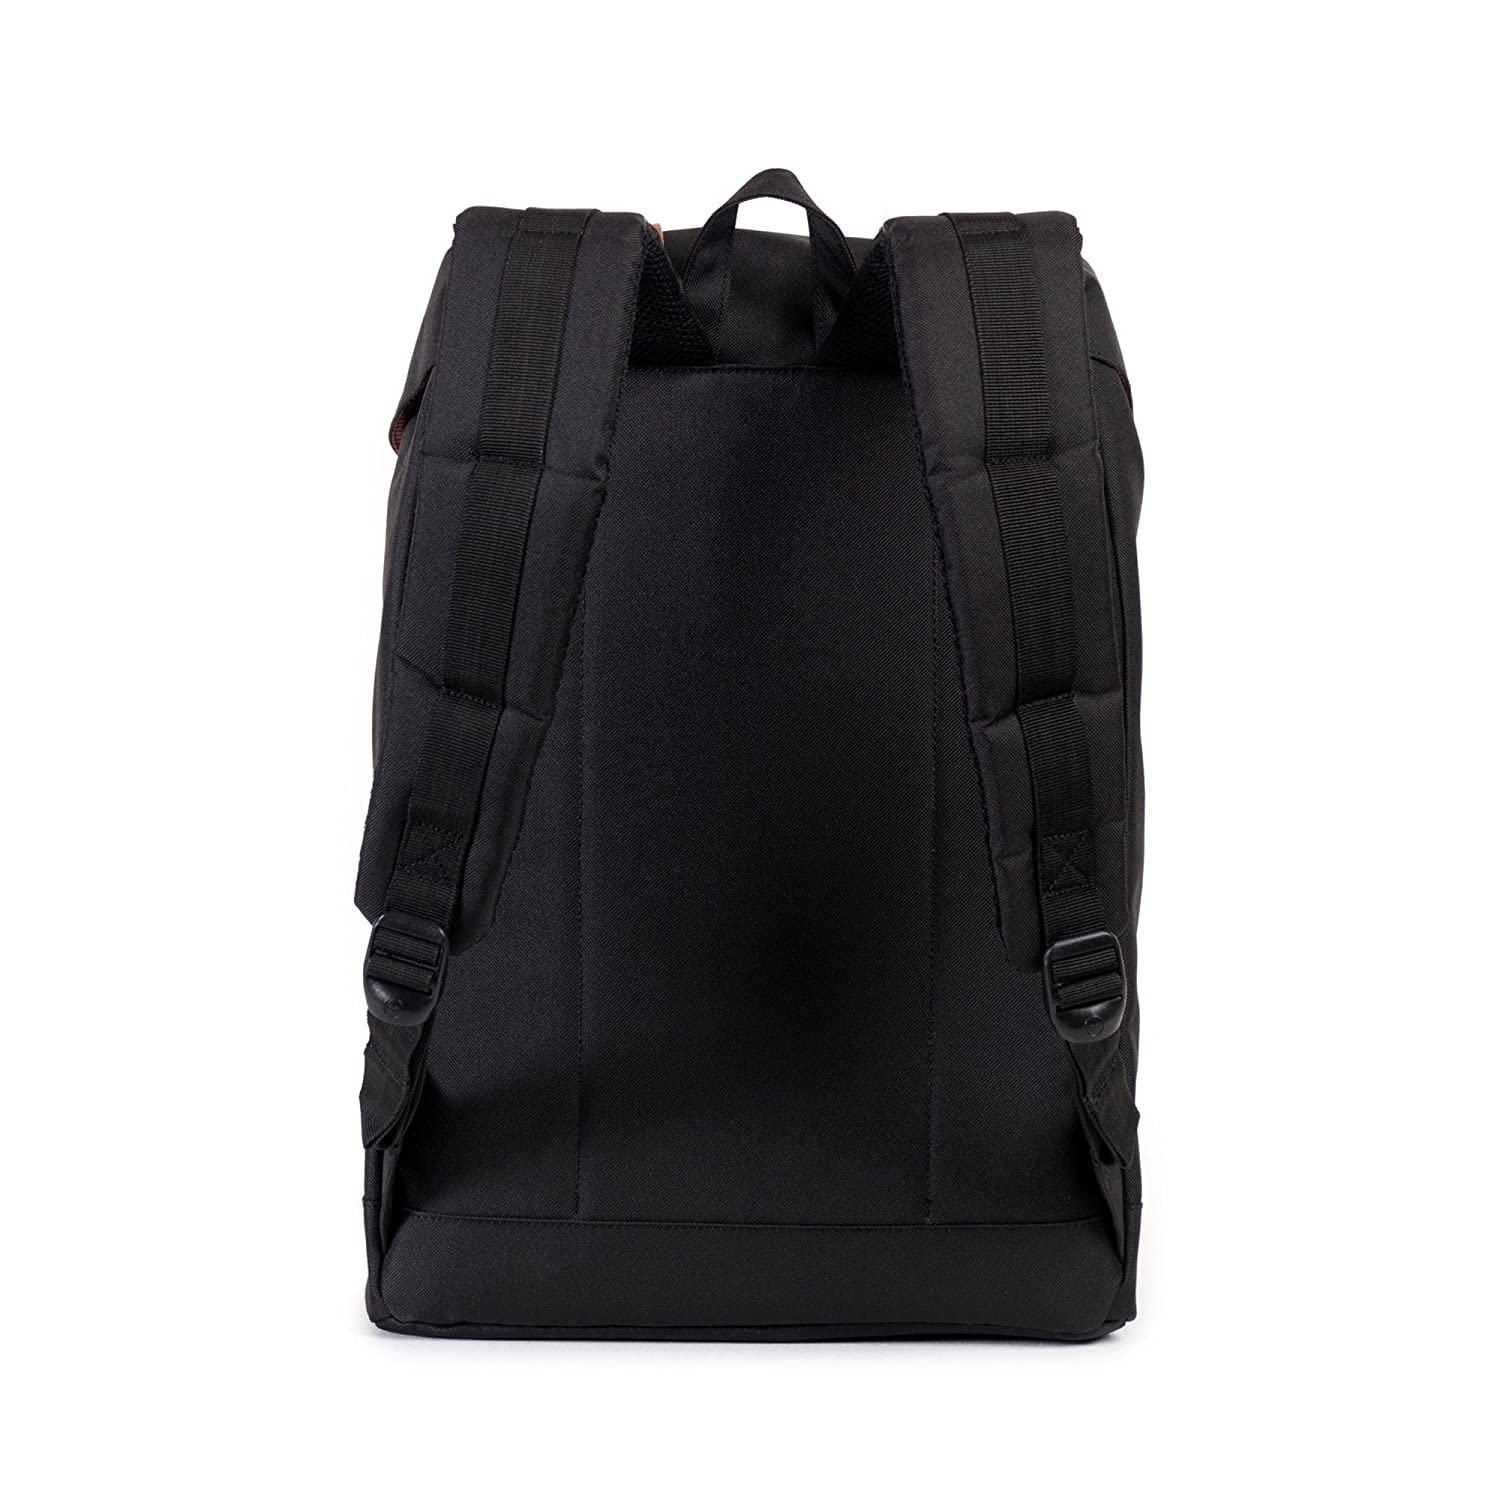 Herschel Supply Co Retreat Backpack Black One Size Buy Wiring For Front Component Speakersimg13661jpg Online At Low Price In India